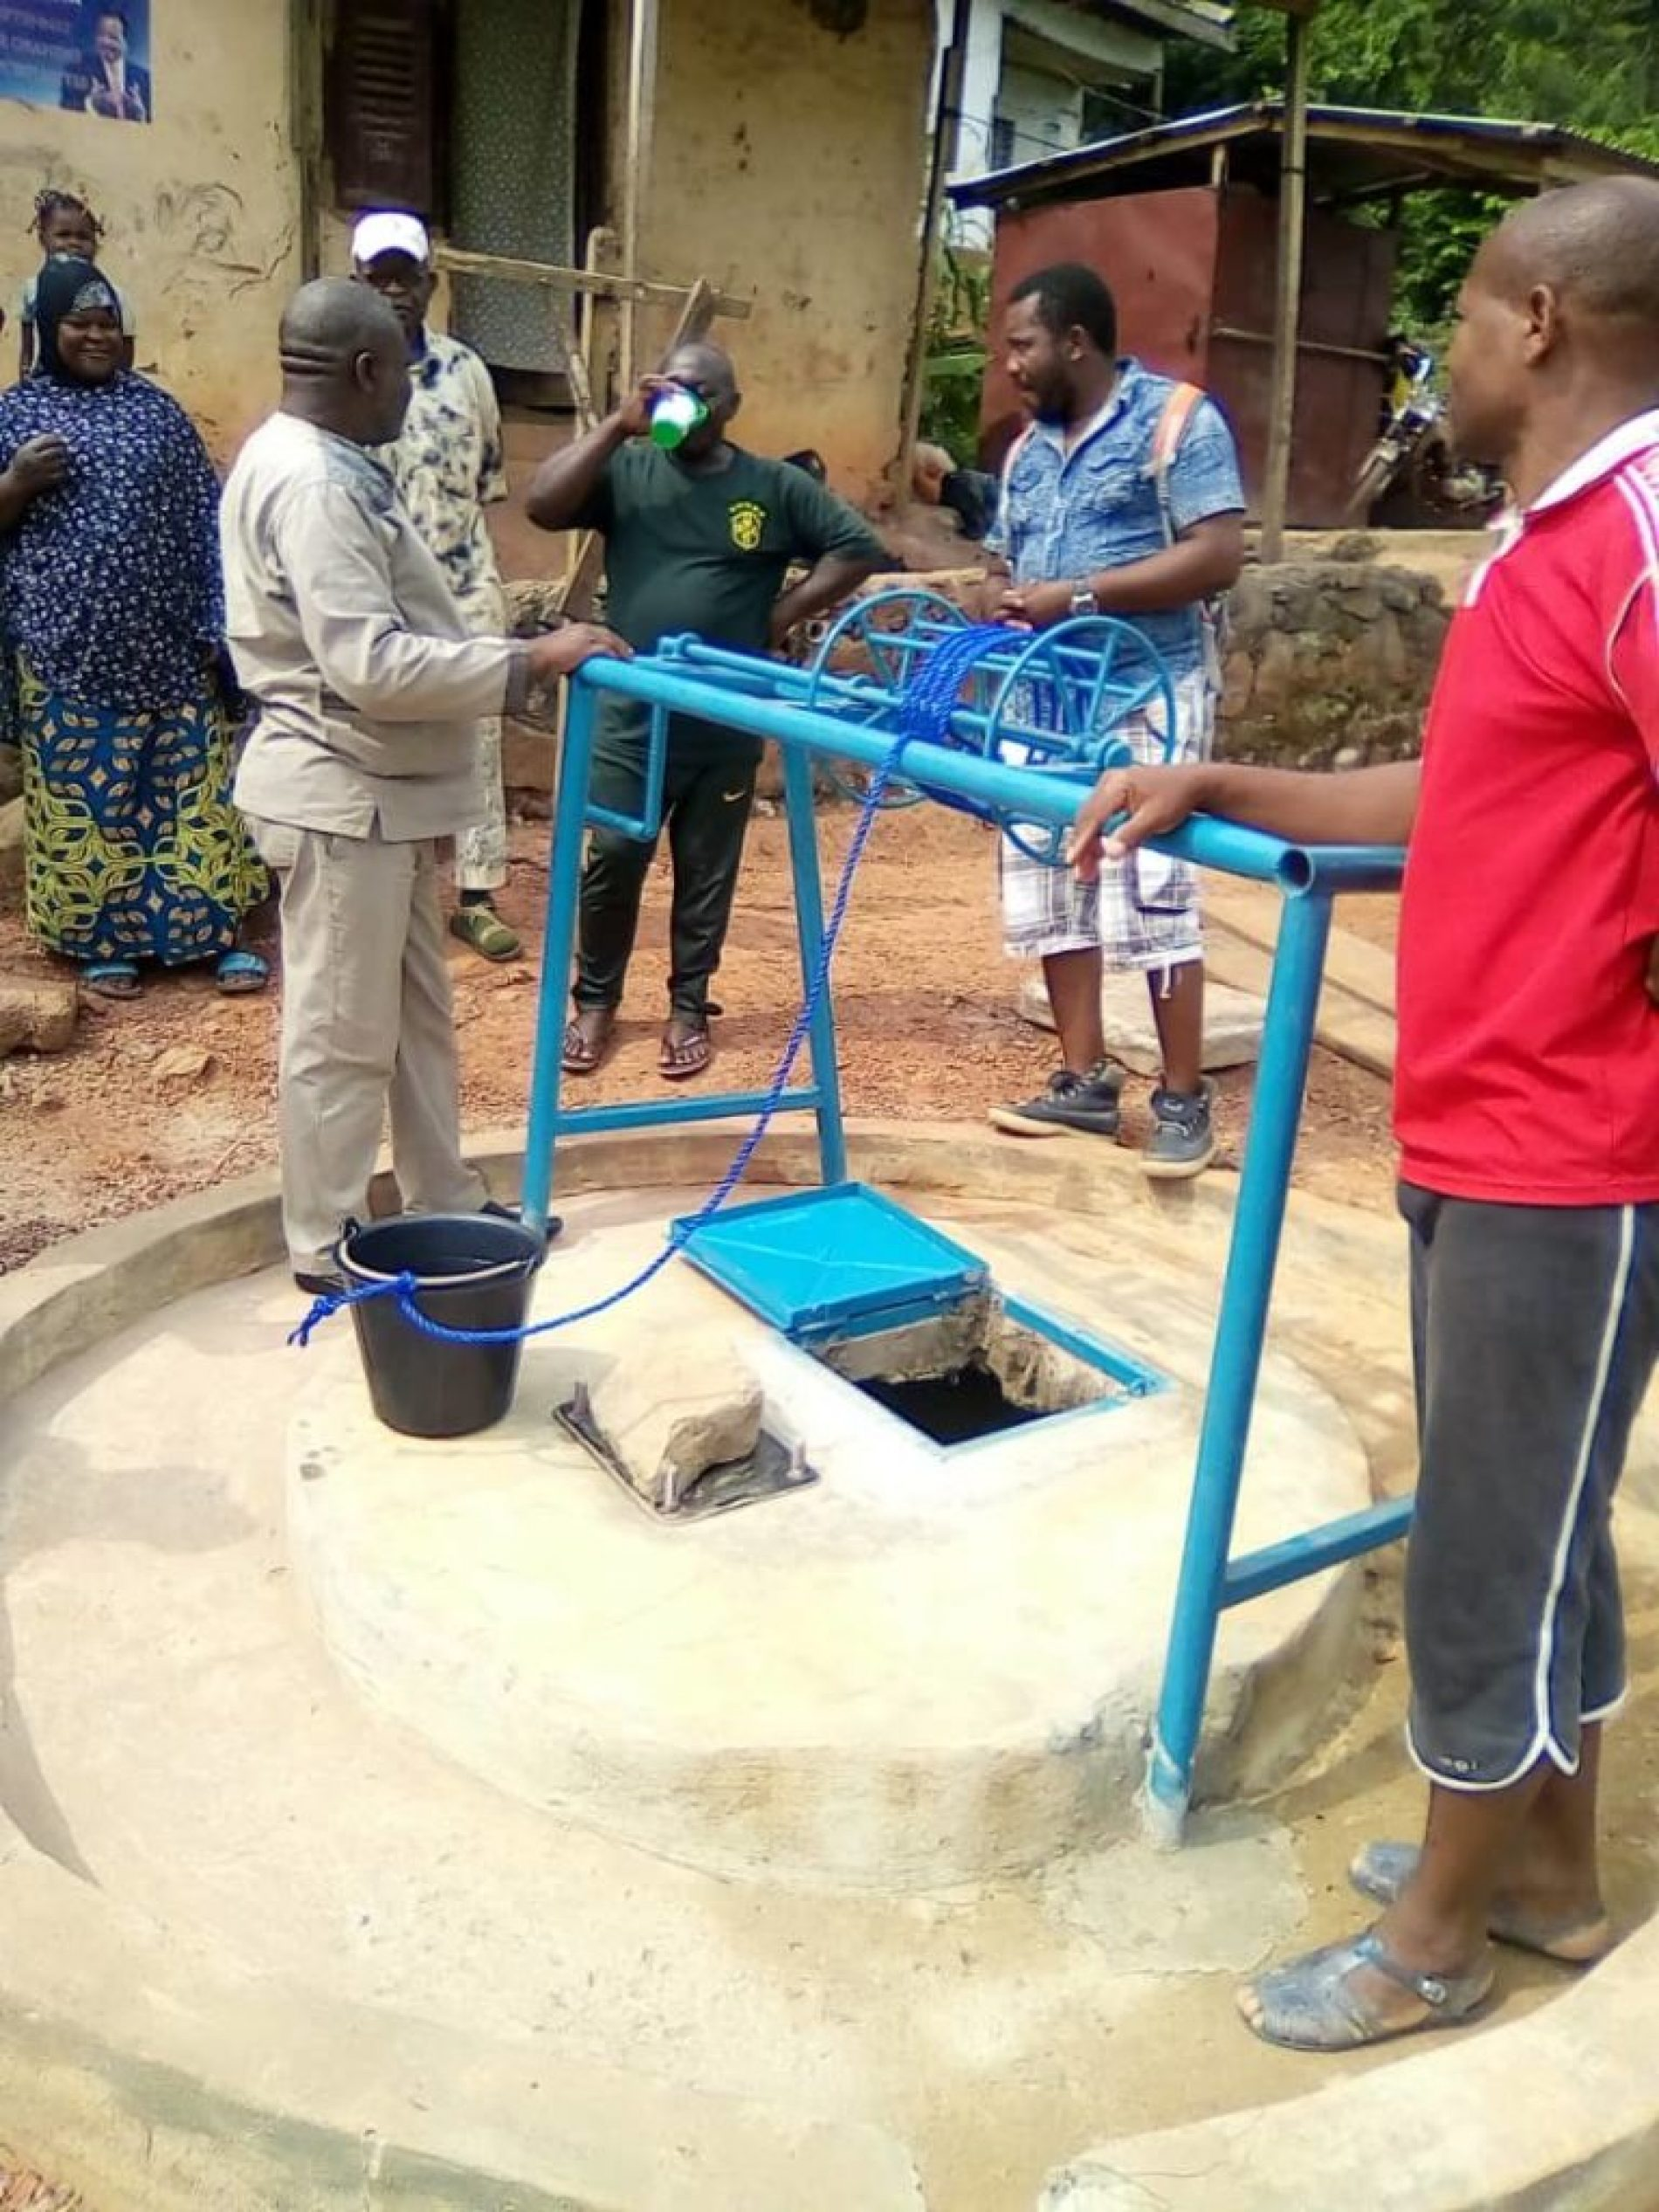 Essential services: inauguration of a borehole in Ebolowa